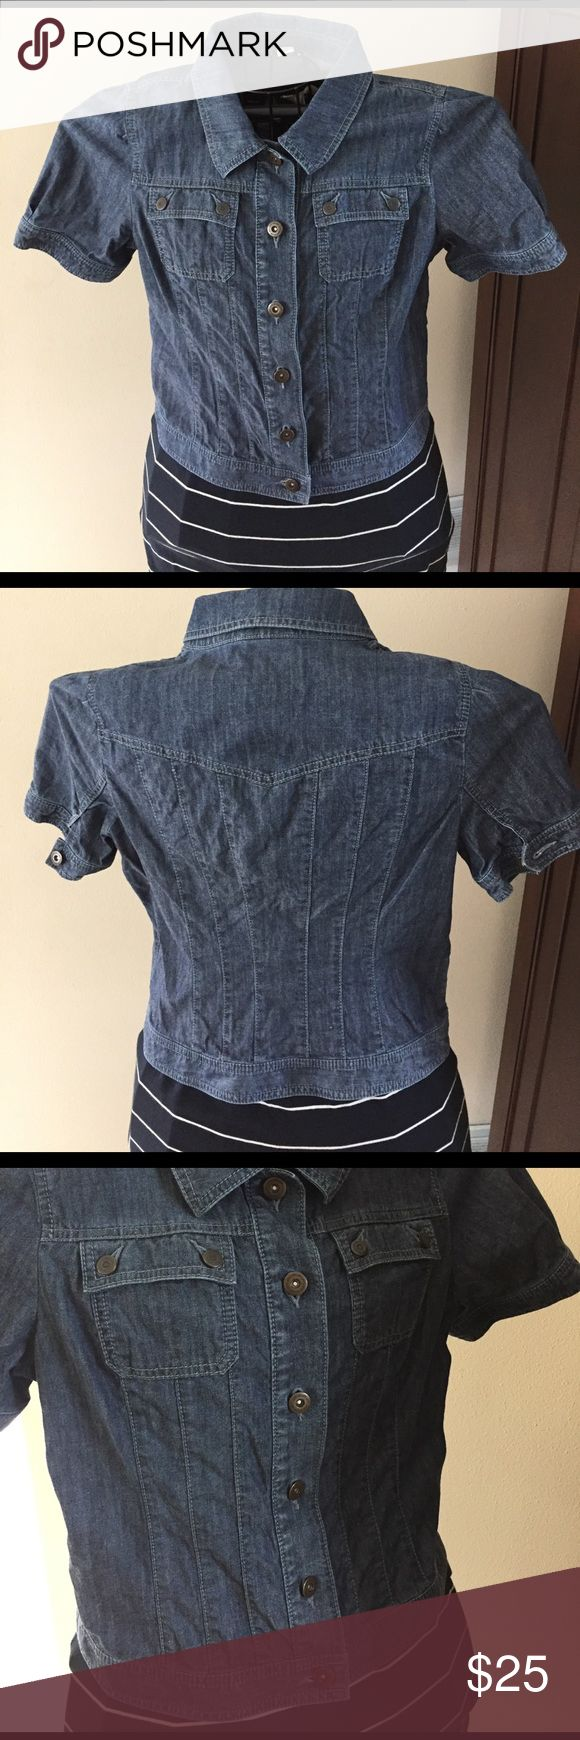 Ann Taylor Loft short sleeve denim shirt medium Super cute cropped Denim short sleeve shirt worn a few times. Classic must have piece. In great condition, you might mistake for brand new.  Can be worn with jeans, pants, skirts or casual dresses.  Shoulder to hem 19 inches. Ann Taylor Tops